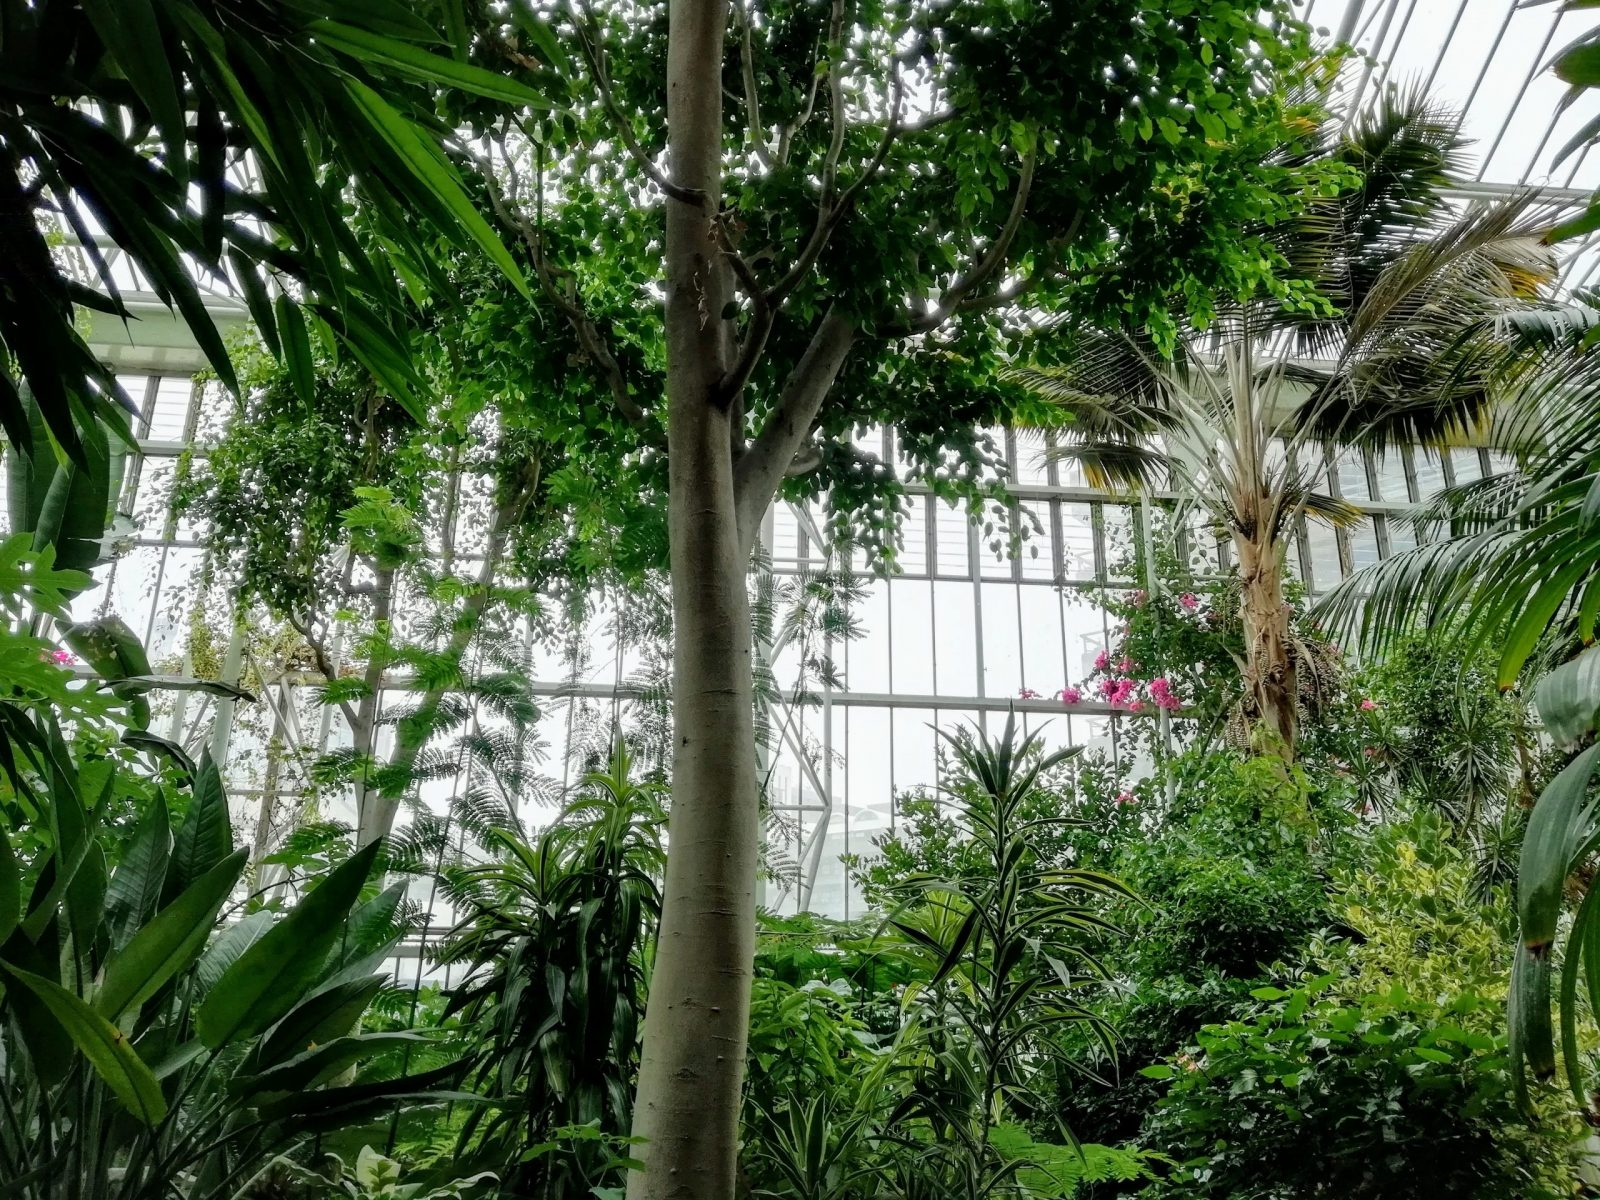 Visiting Barbican Conservatory: Photo Gallery 2